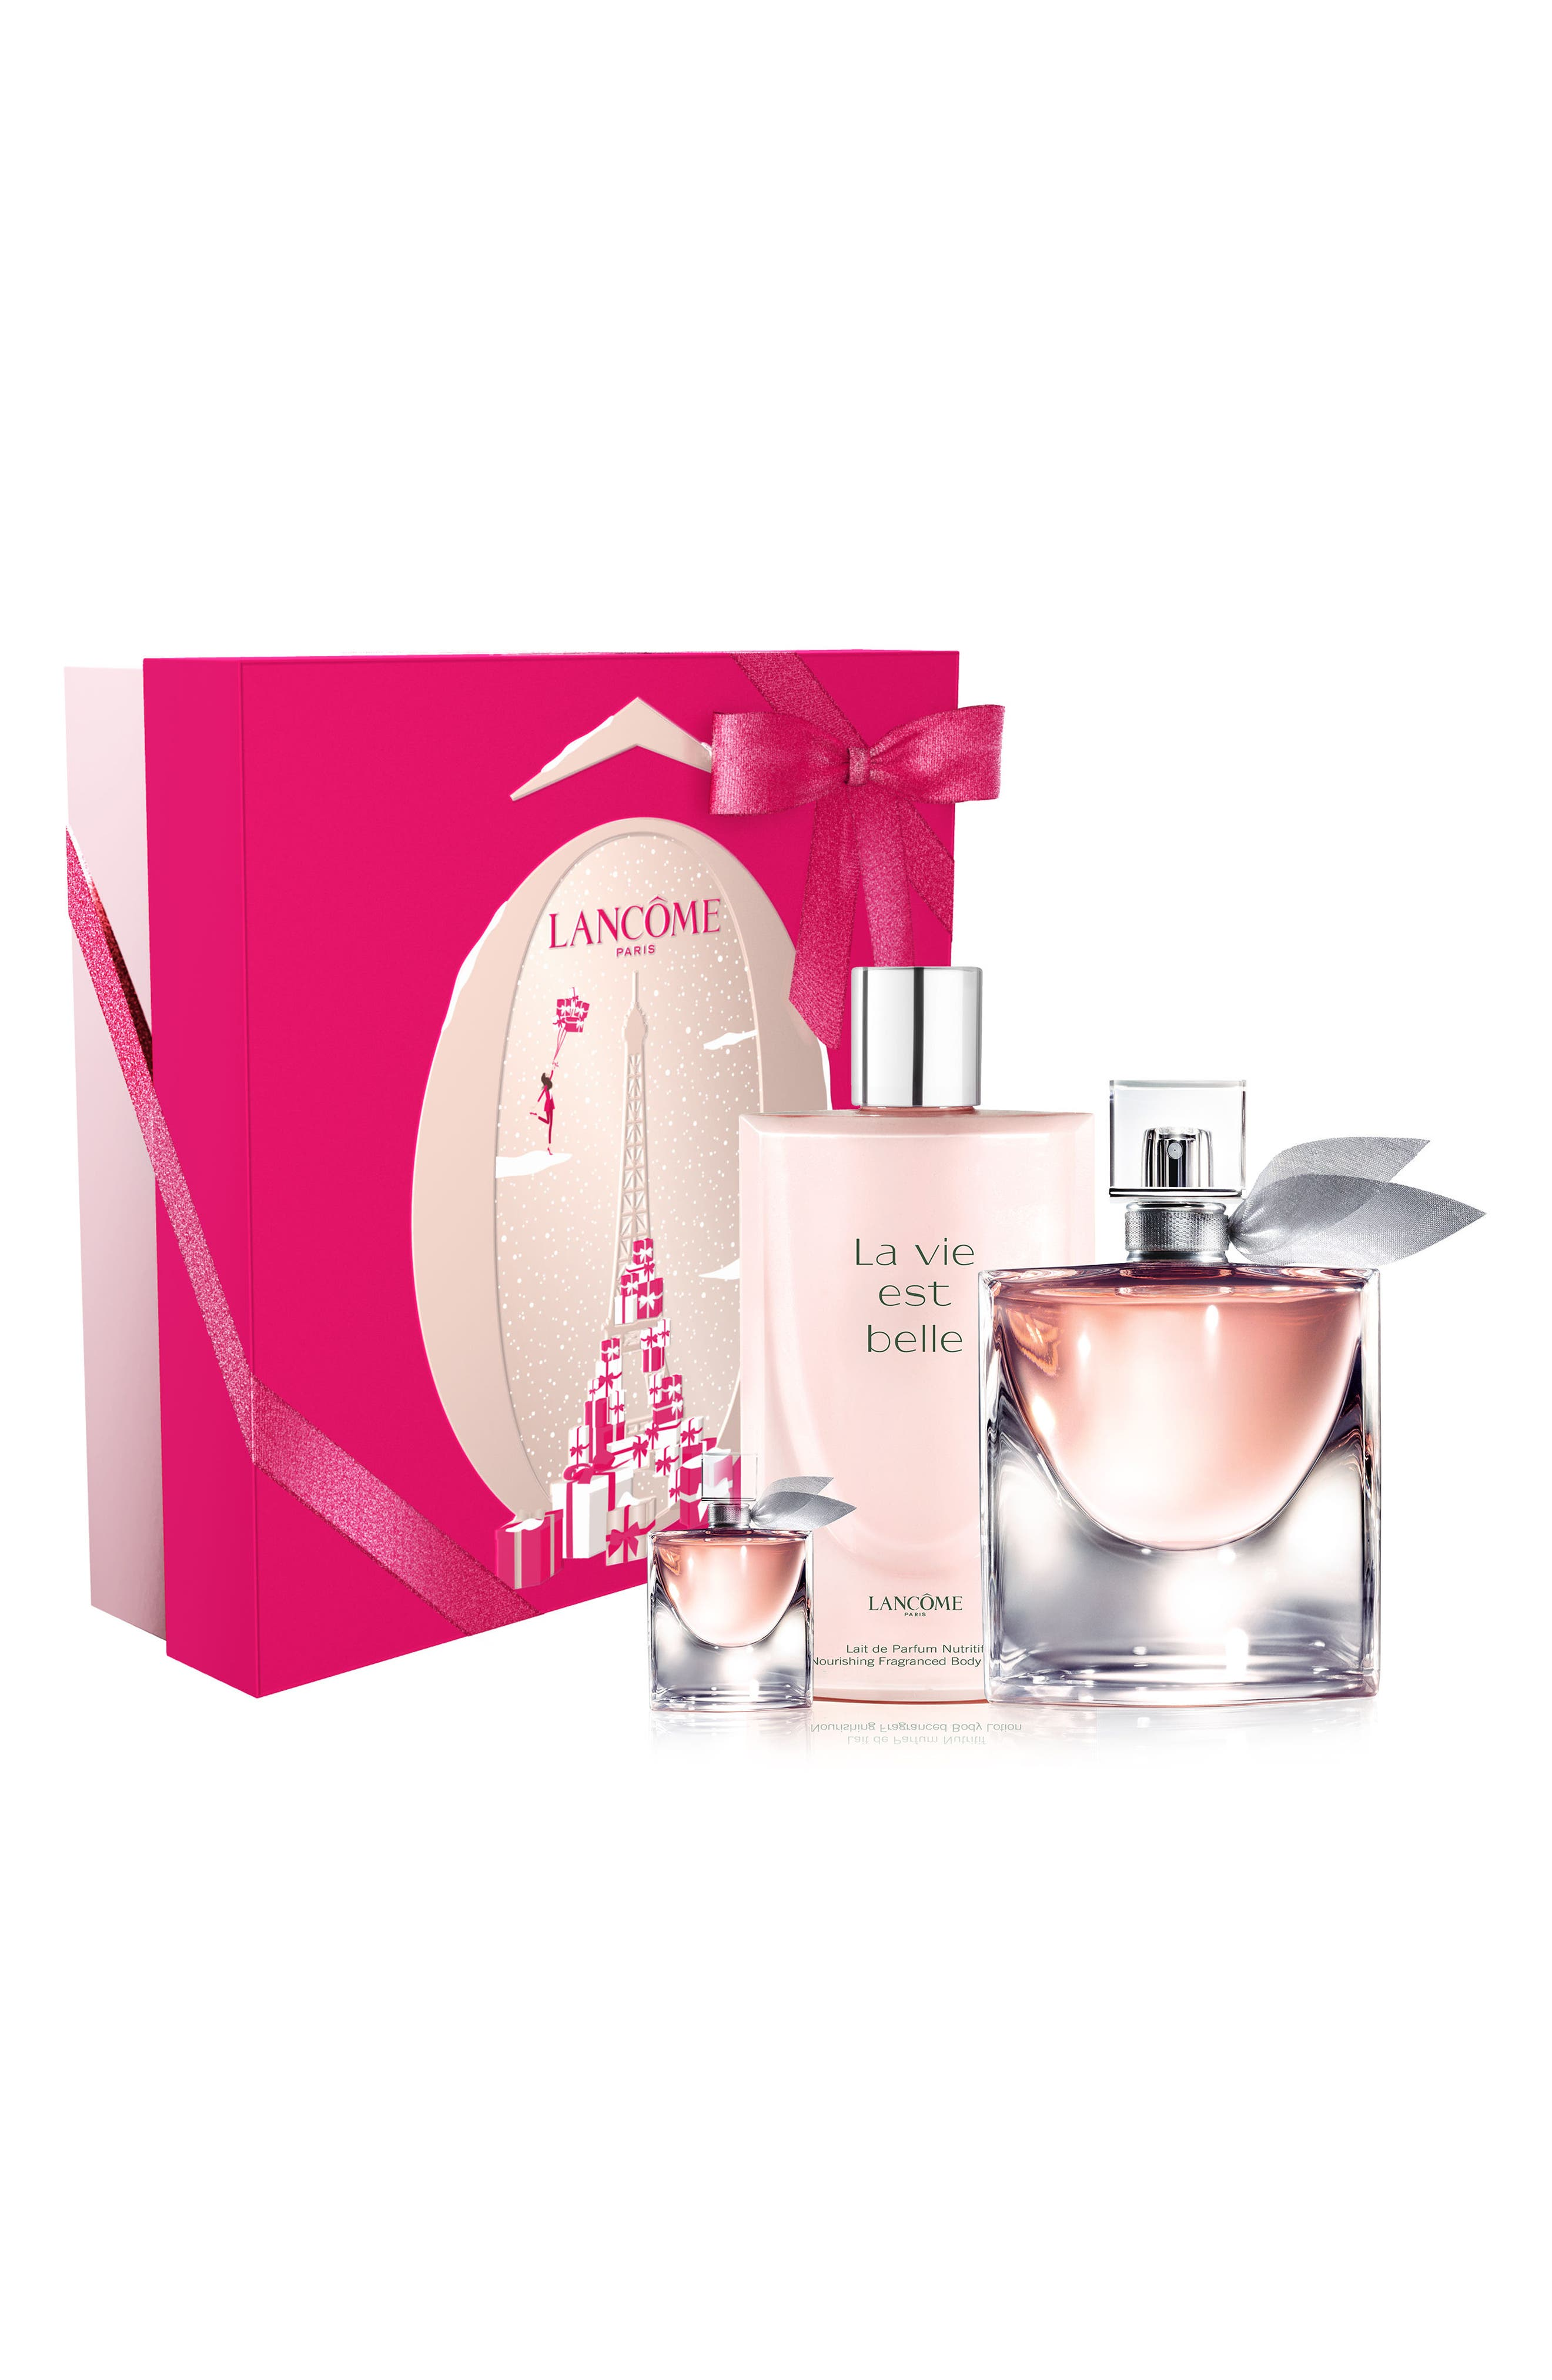 Lancôme La vie est belle Inspirations Set ($176.50 Value)